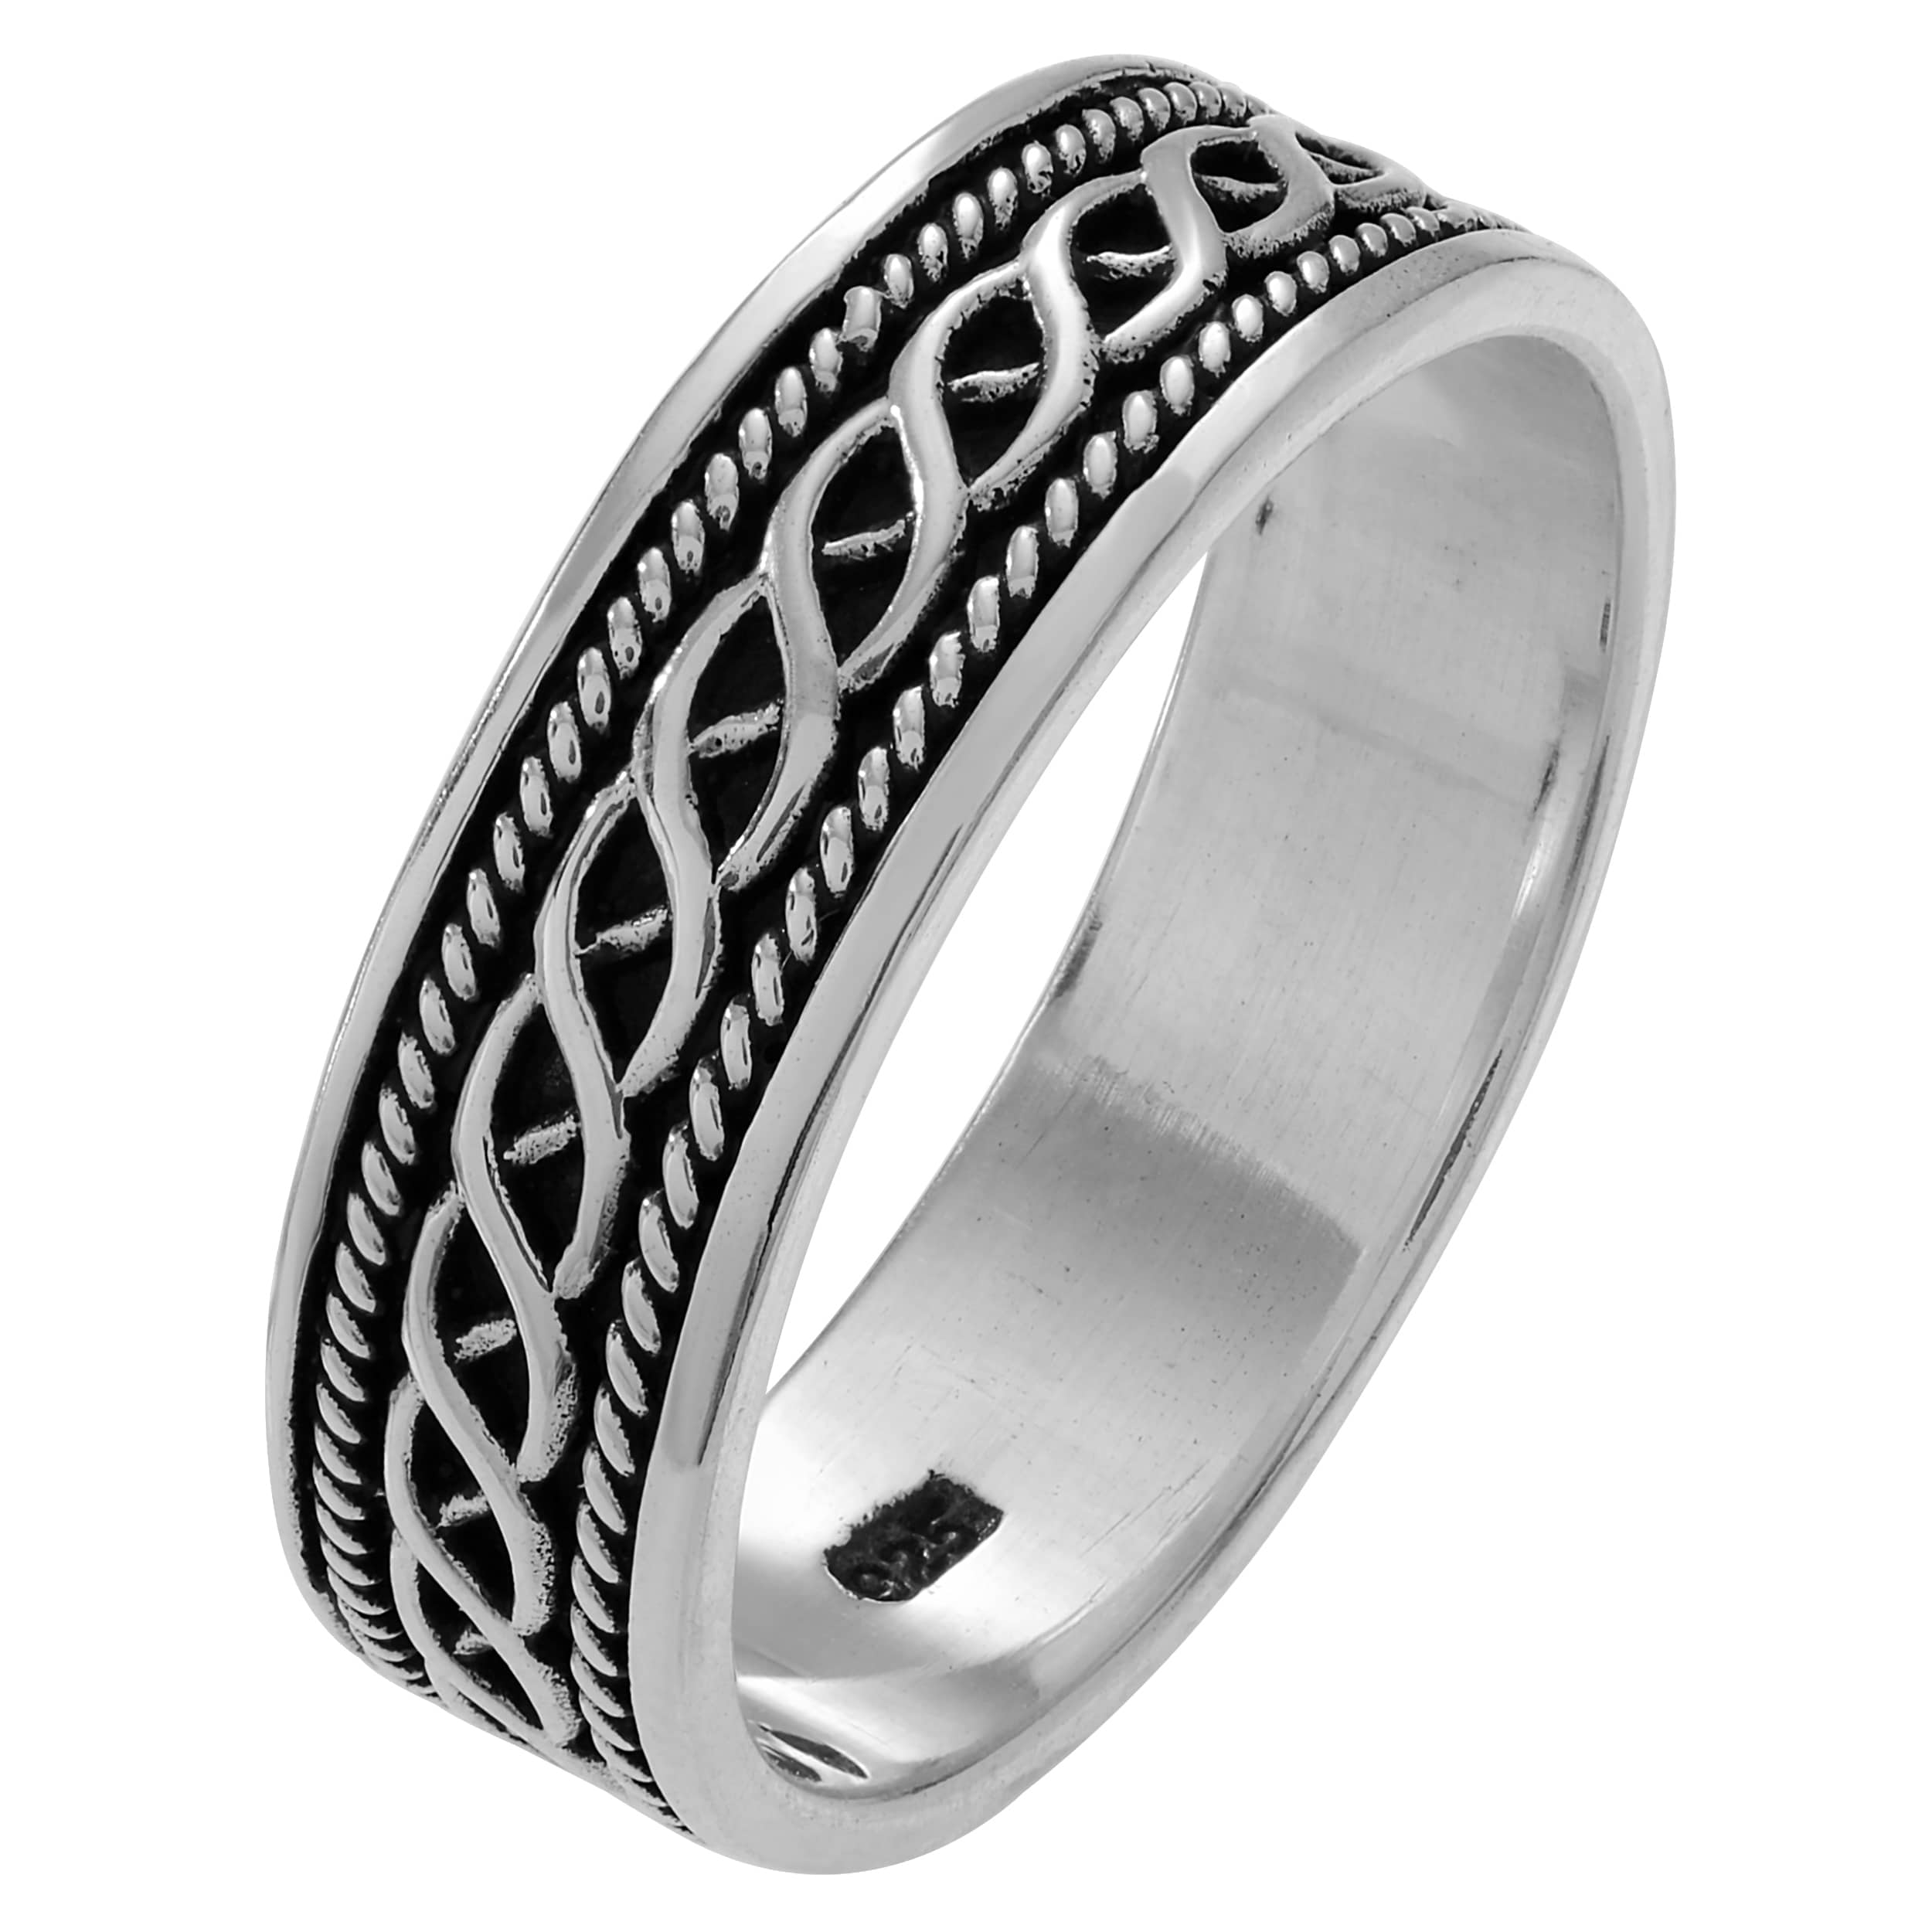 rose gold mens infinity him for elegant bands rings fresh concept pictures of platinum ideas band wedding